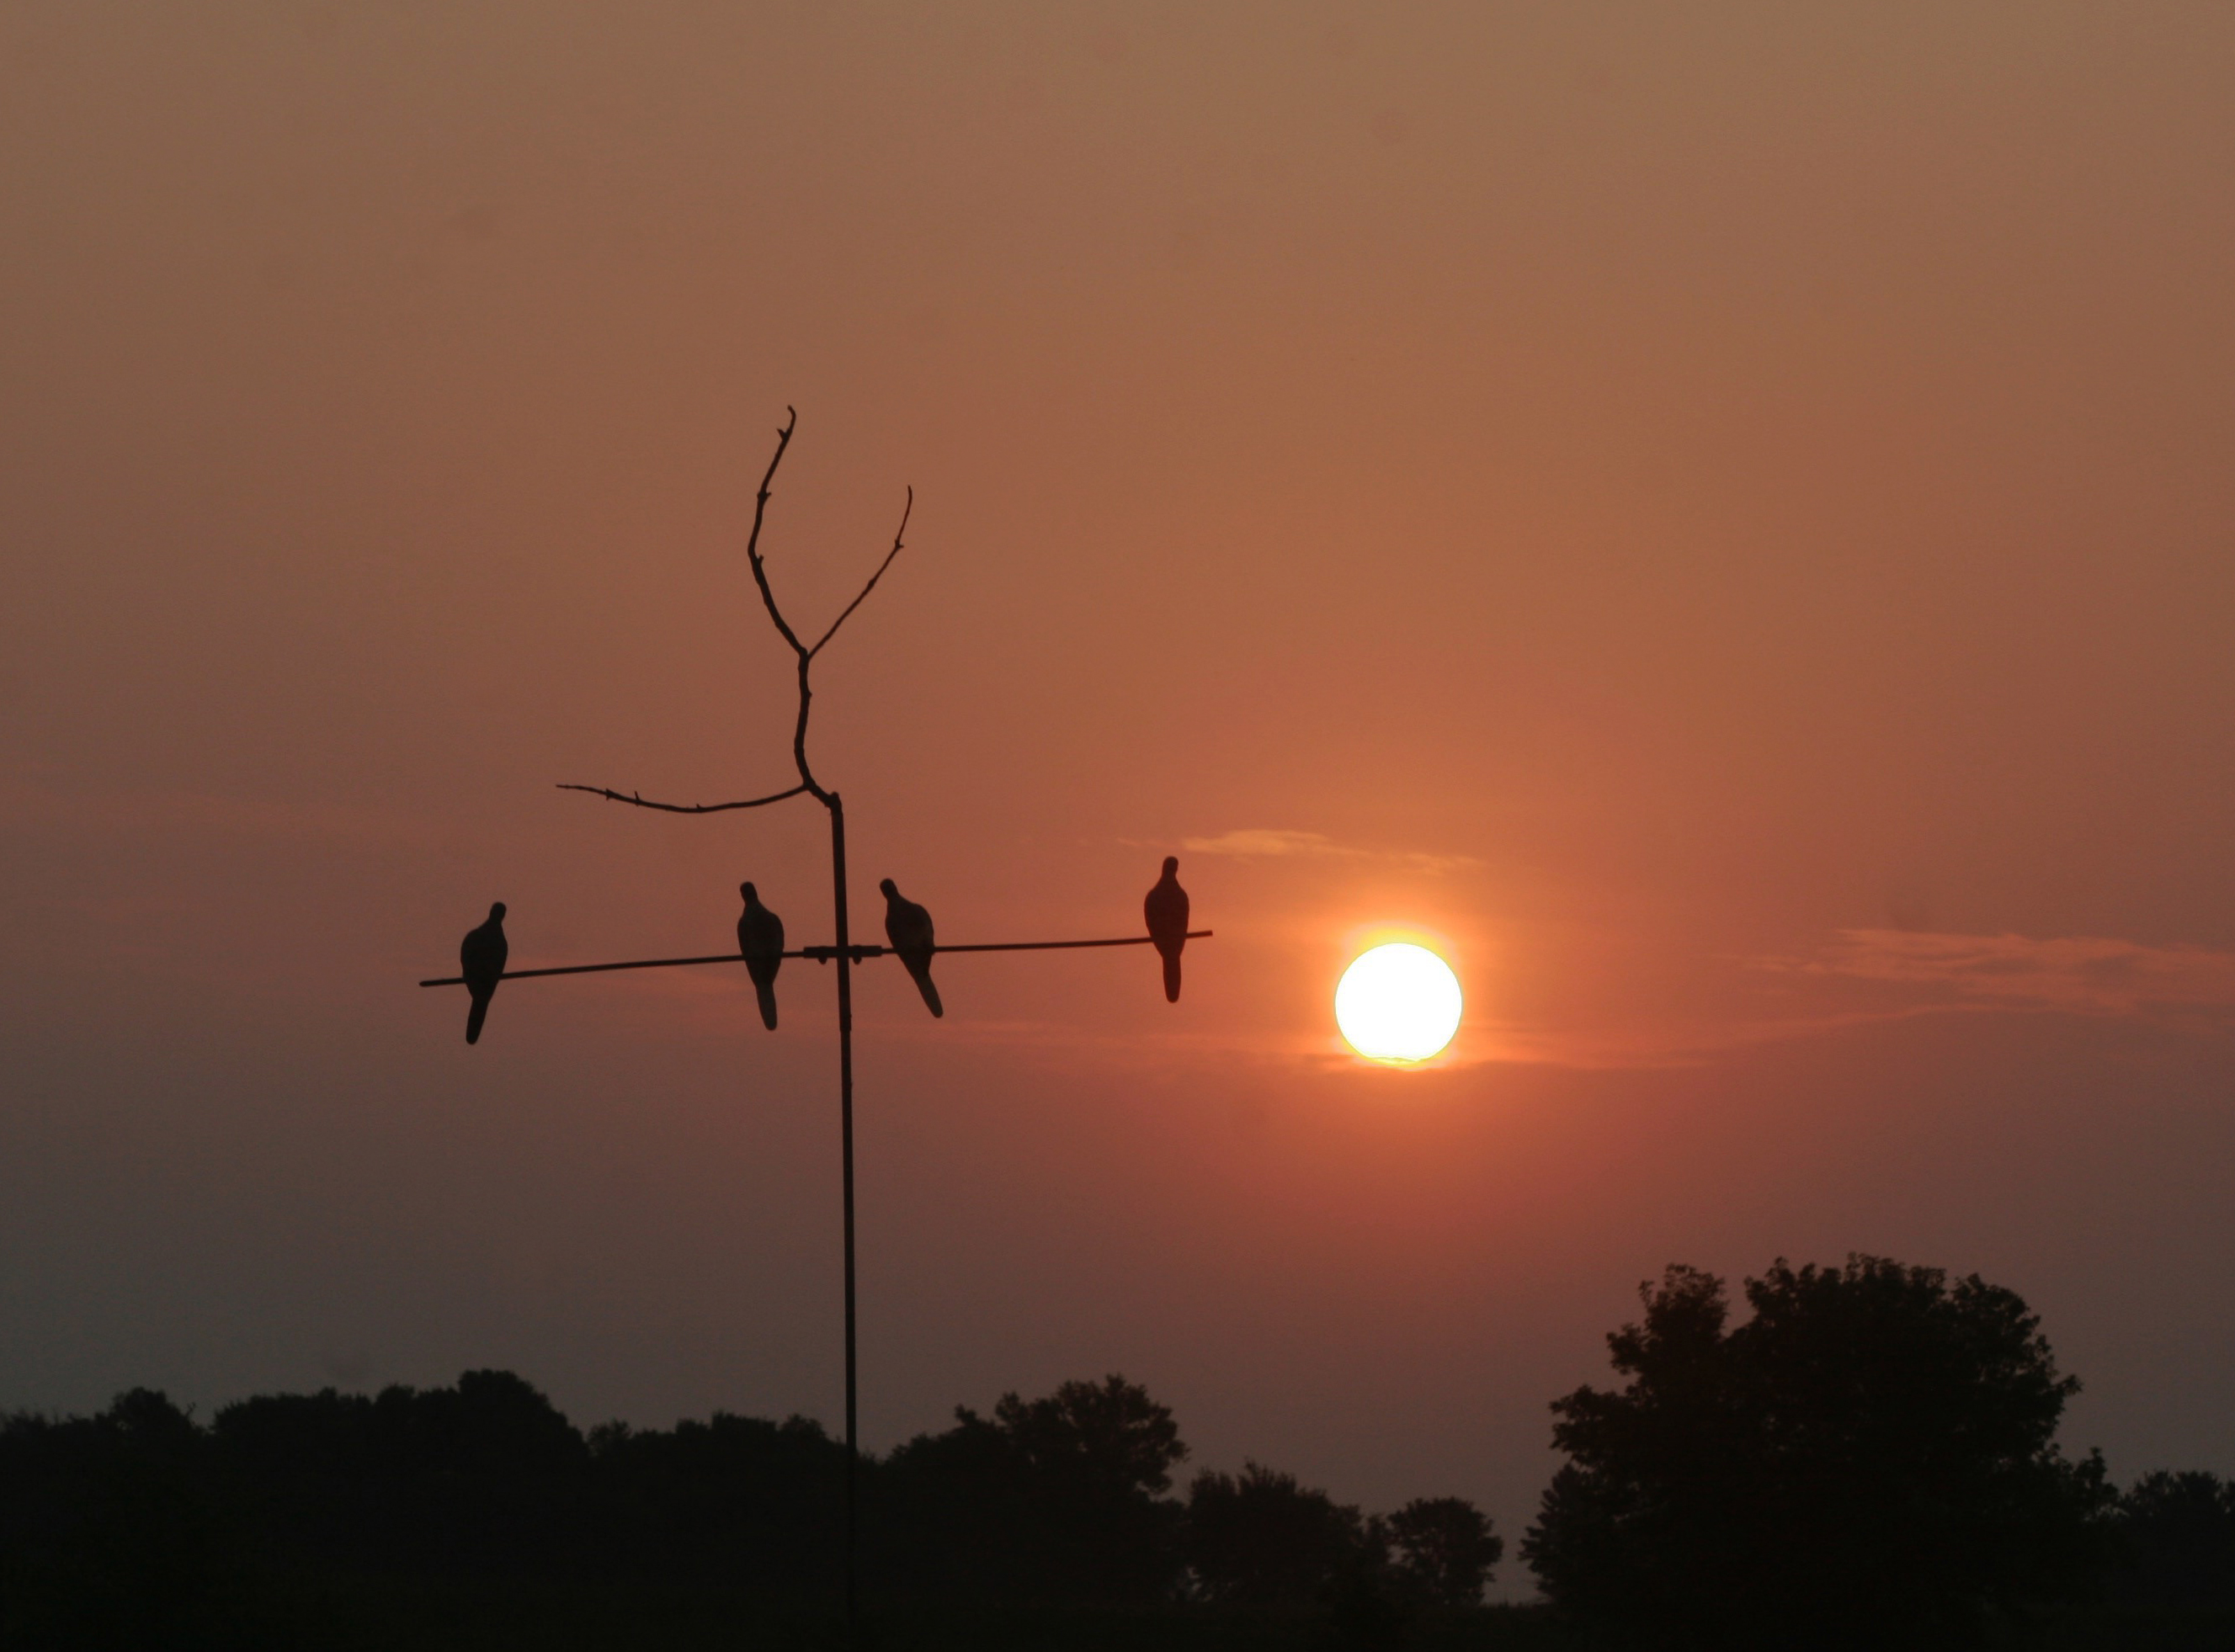 A hot hunt: Another mourning dove season opened with heat, humidity — and …